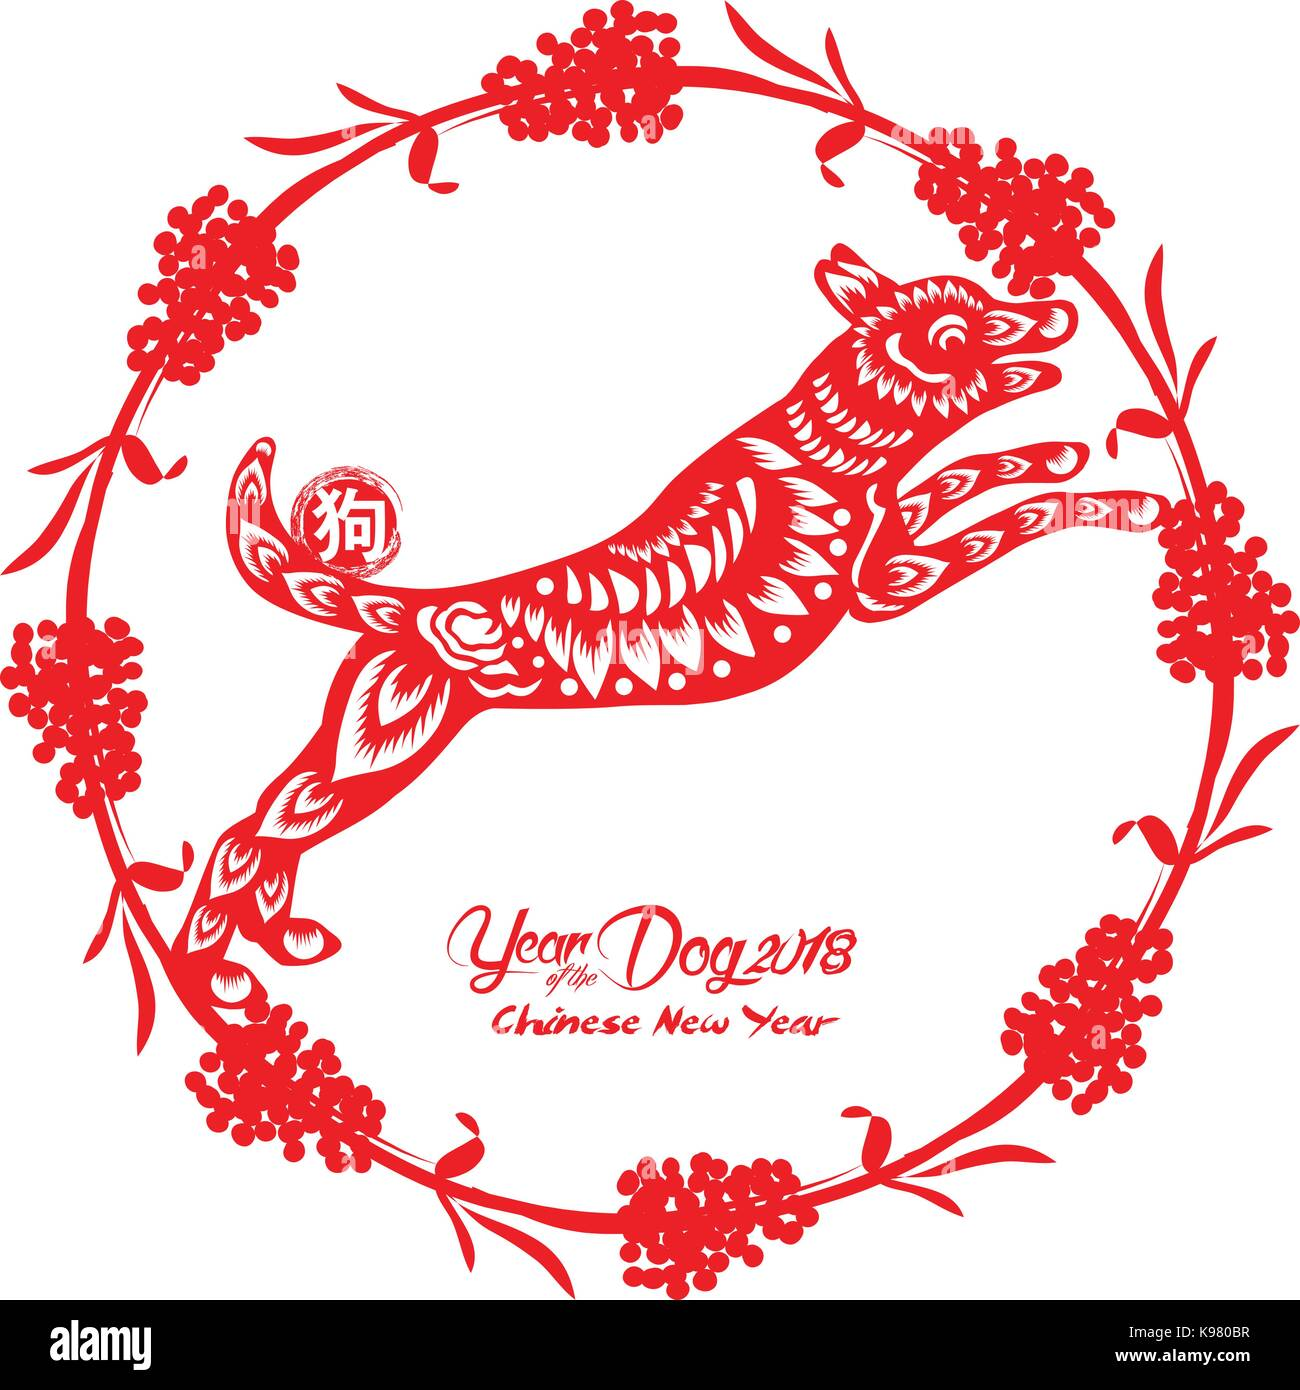 Red Paper Cut Dog In Frame And Flower Symbols Year Of The Dog Stock